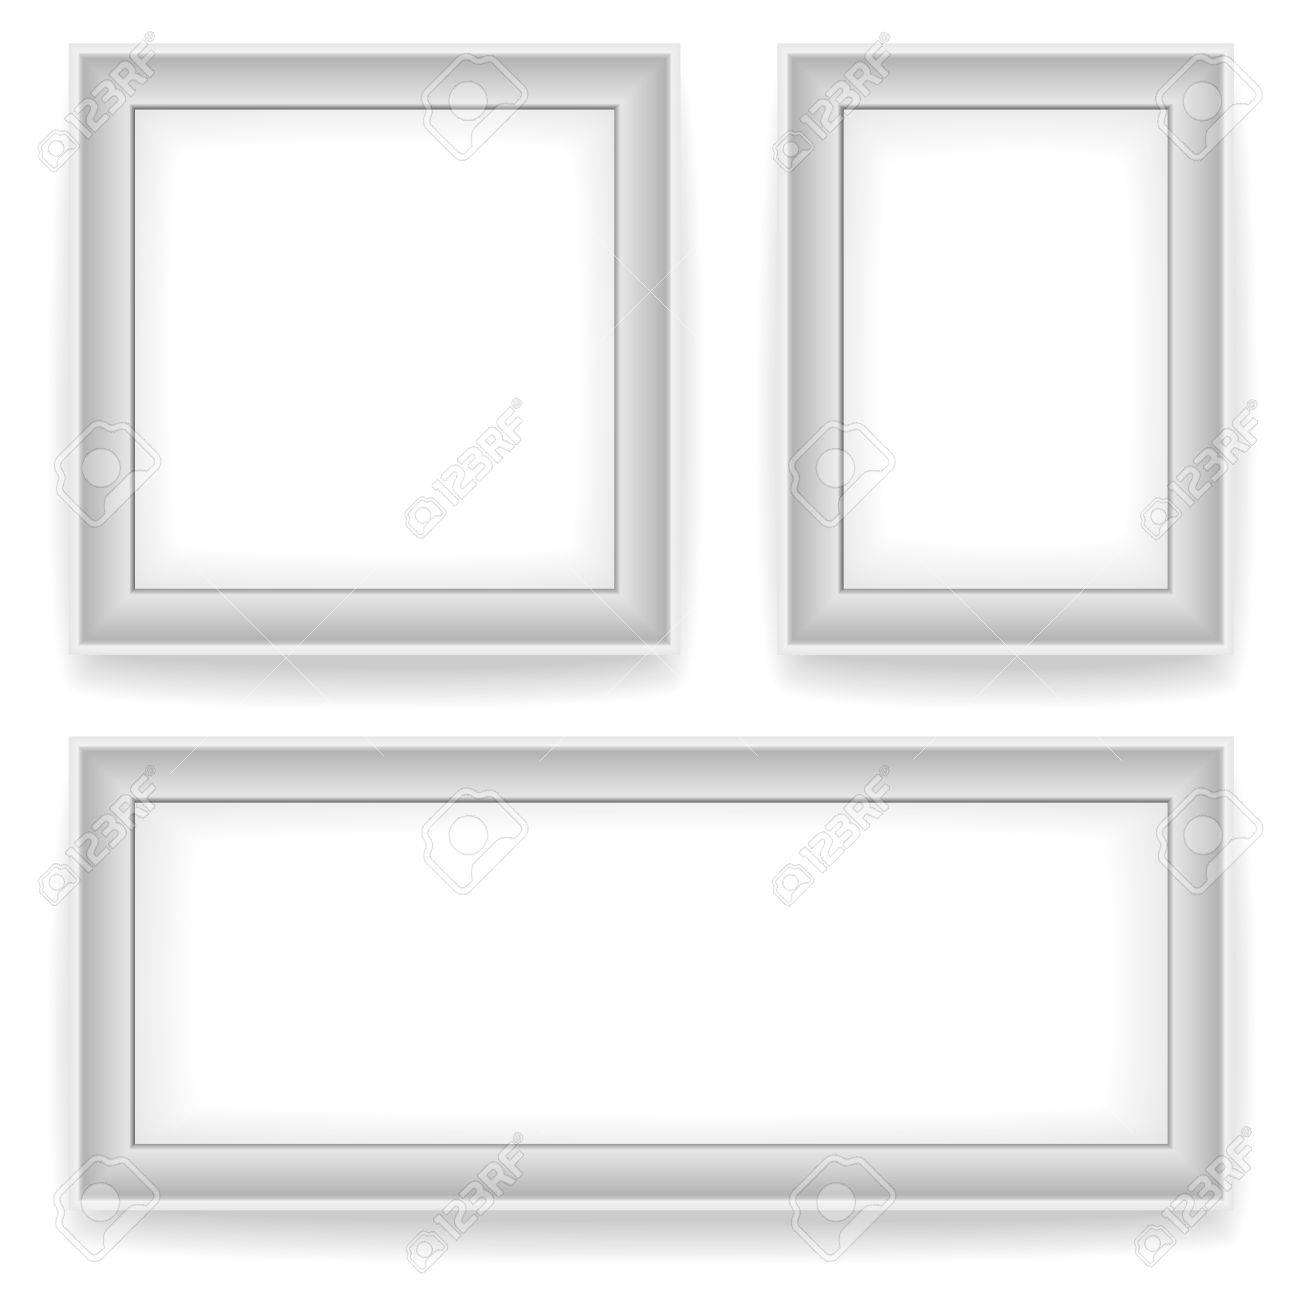 blank white wall picture frames isolated on white background 3 variants square vertical - White Square Picture Frames